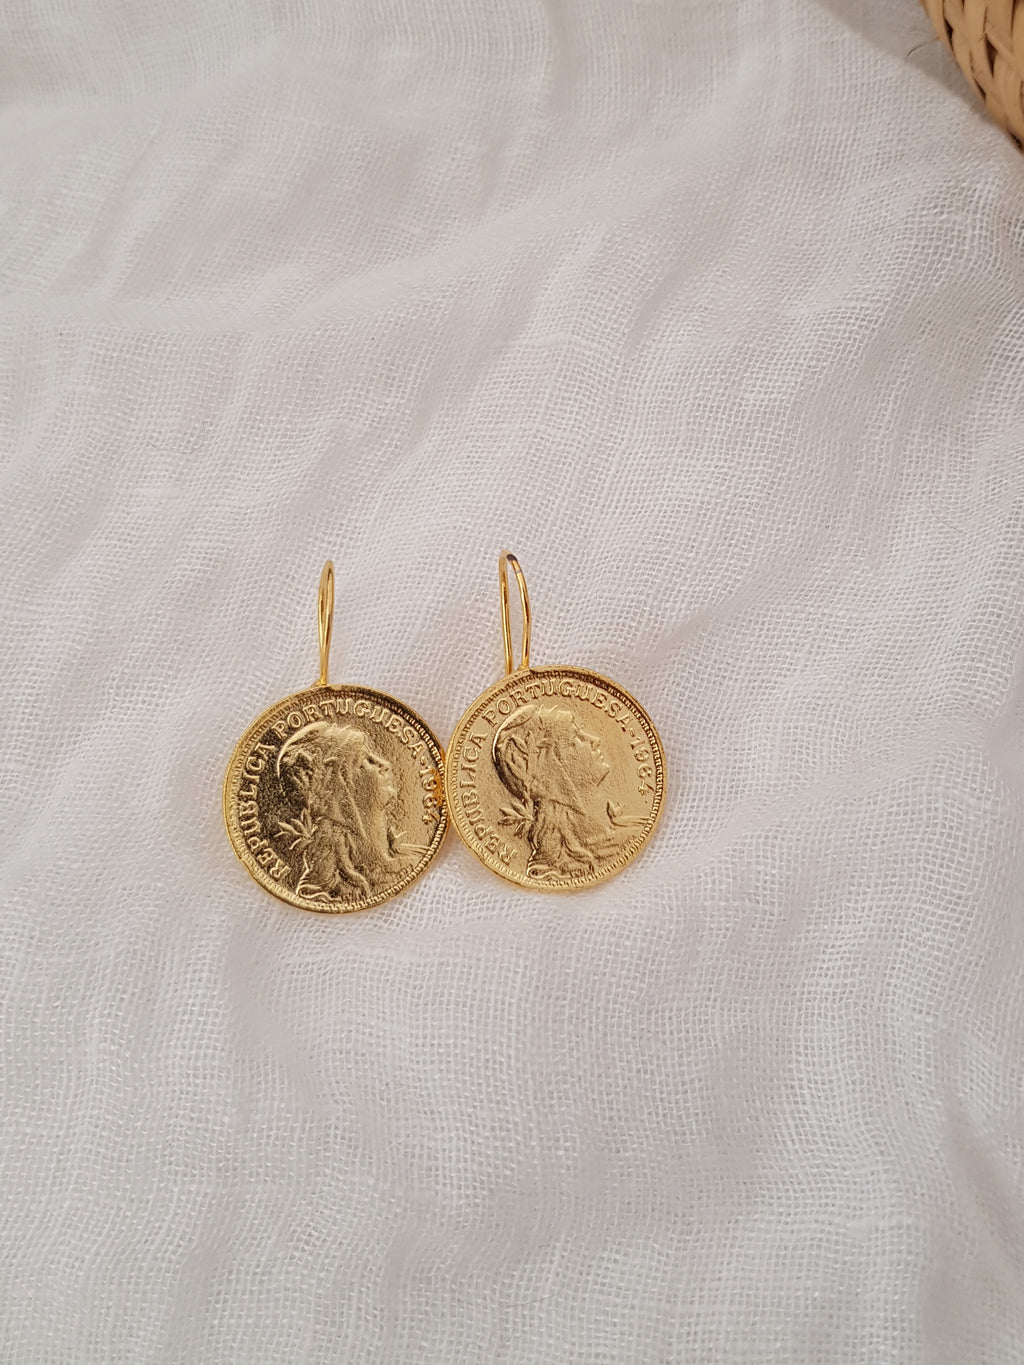 COIN EARRINGS // handmade in portugal